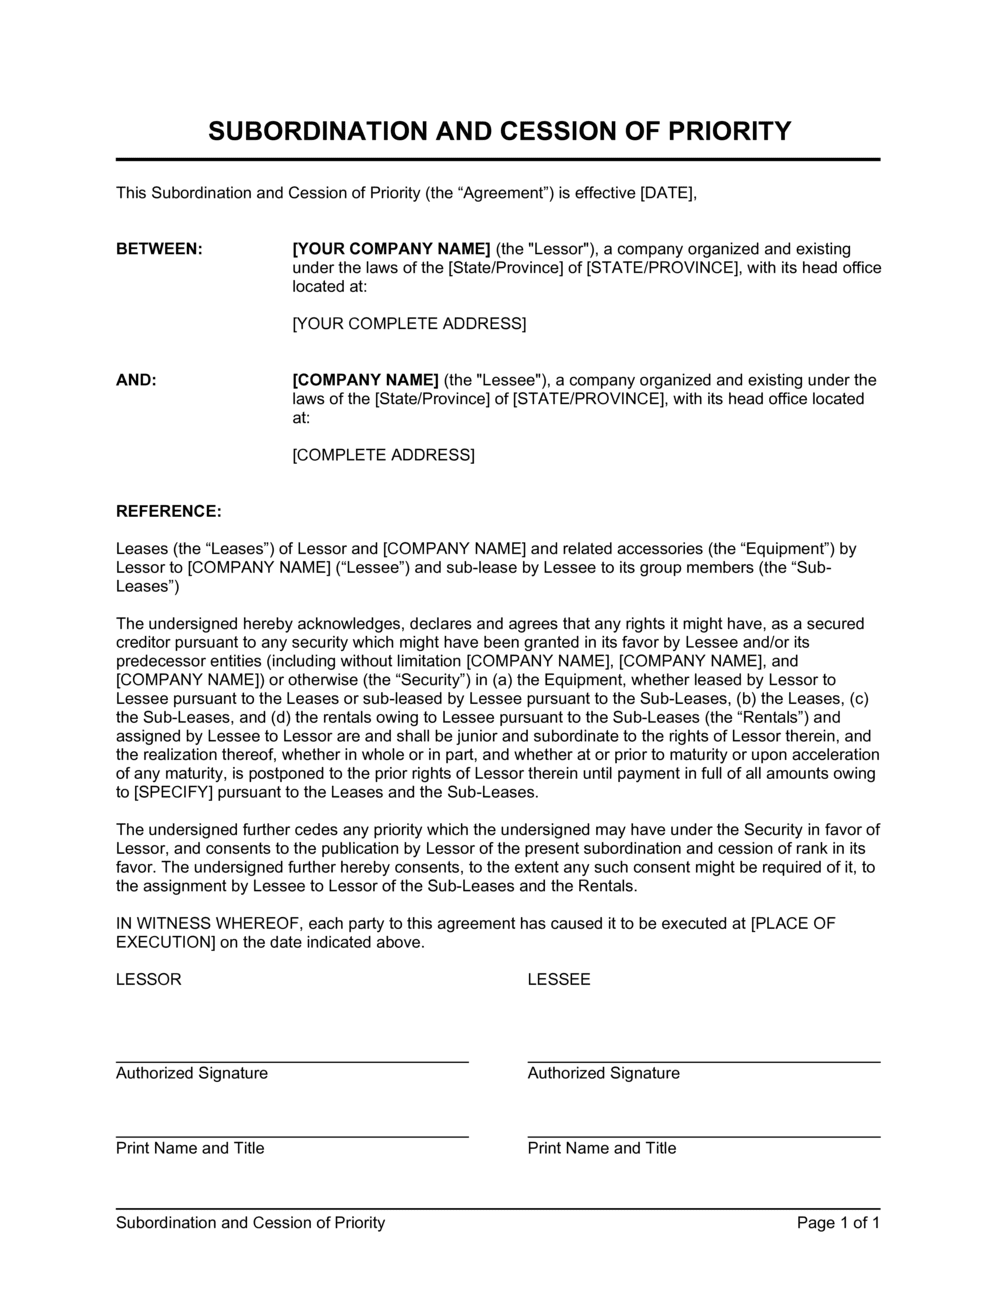 Business-in-a-Box's Subordination and Cession of Priority Leased Equipment Template